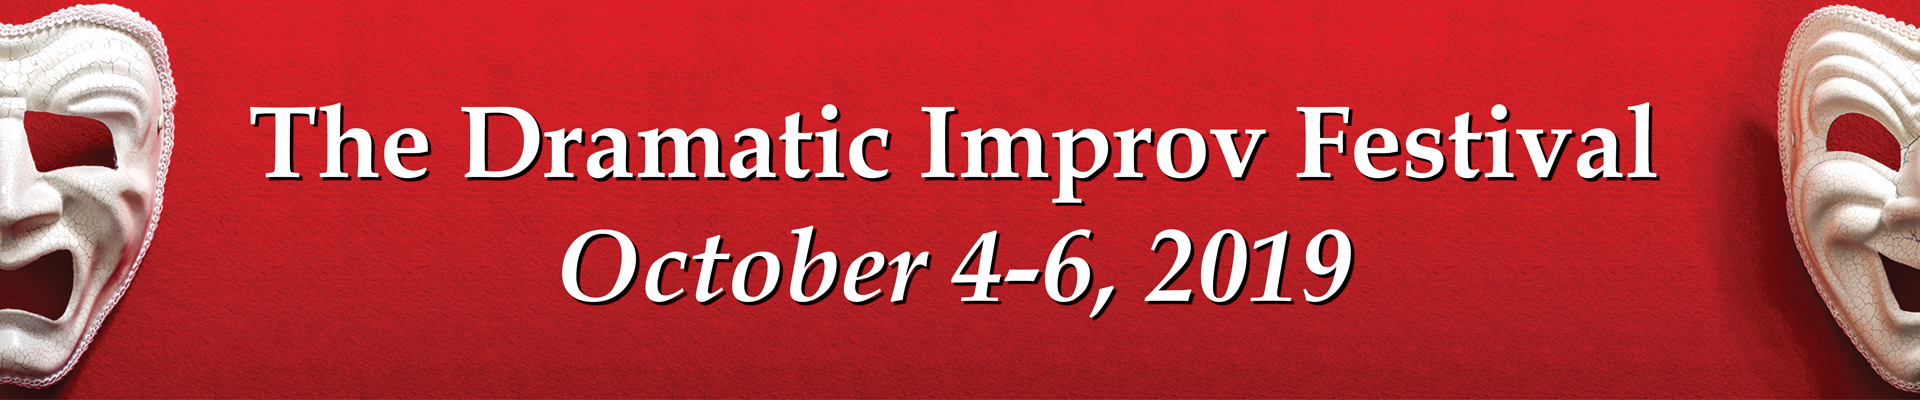 The Dramatic Improv Festival